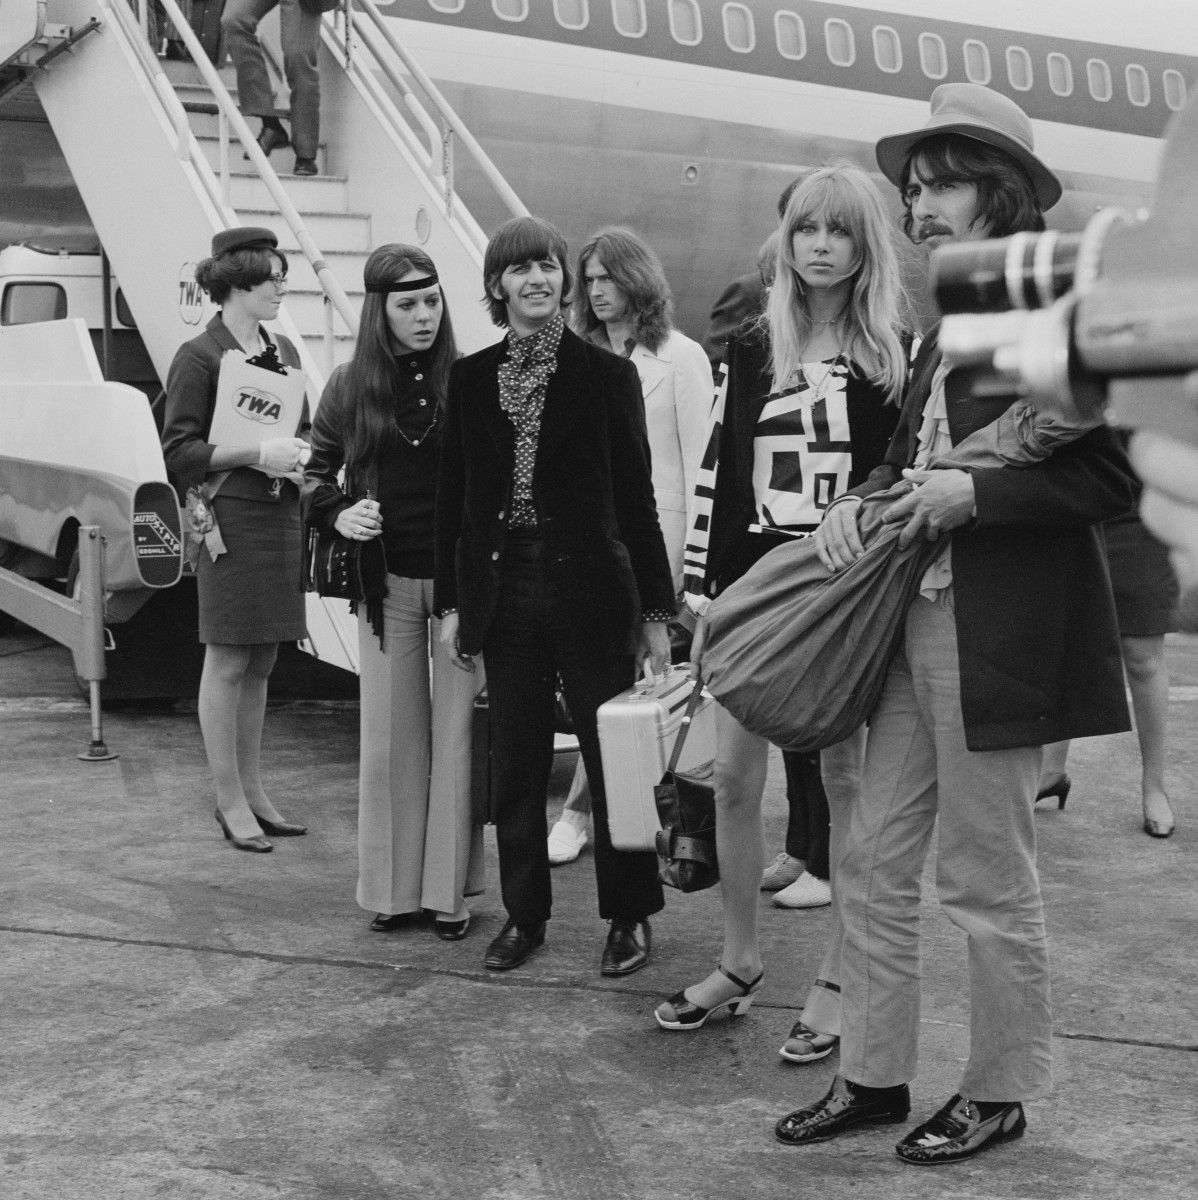 Eric Clapton (in the white suit,) Ringo Starr and his wife Maureen Cox and George Harrison and his wife Pattie Boyd at Heathrow Airport, in London on June 26, 1968